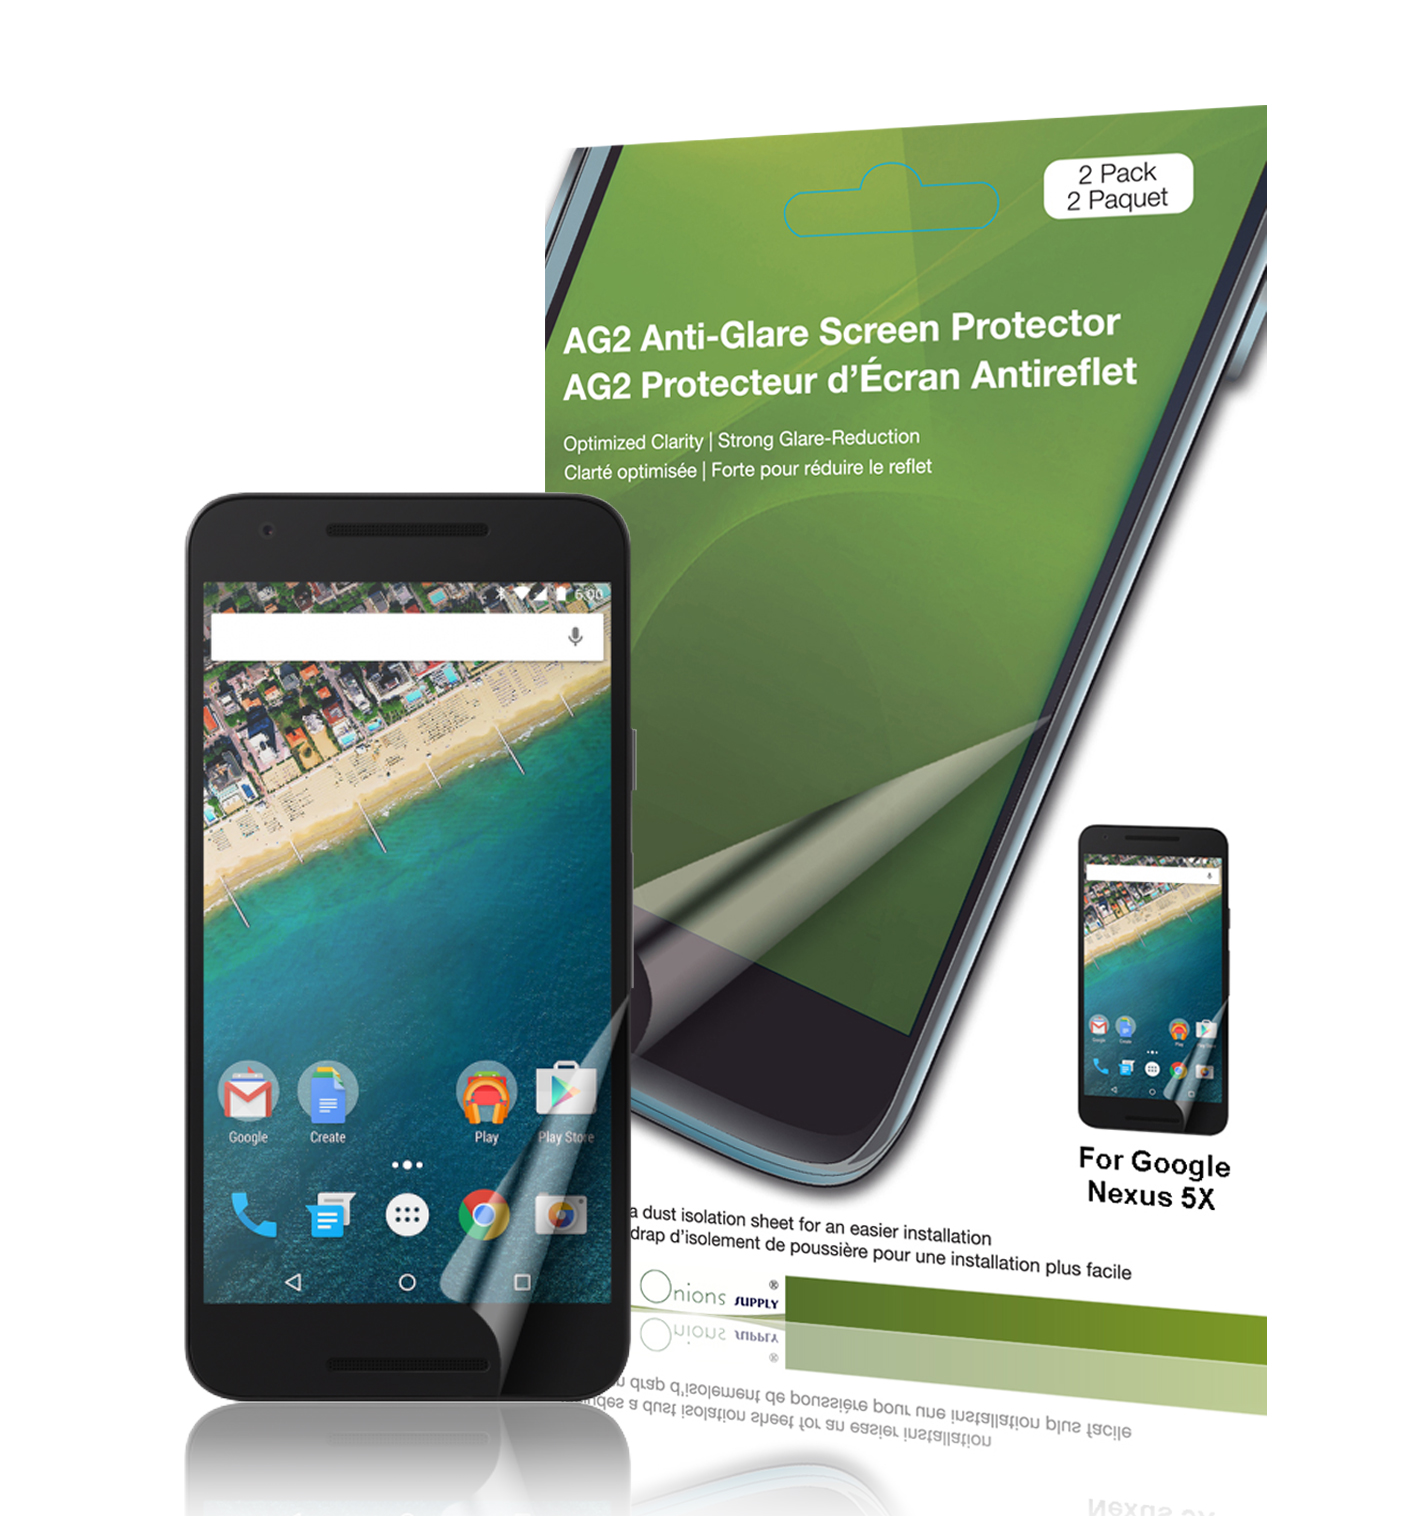 adding this olixar nexus 5x screen protector 2 in 1 pack about